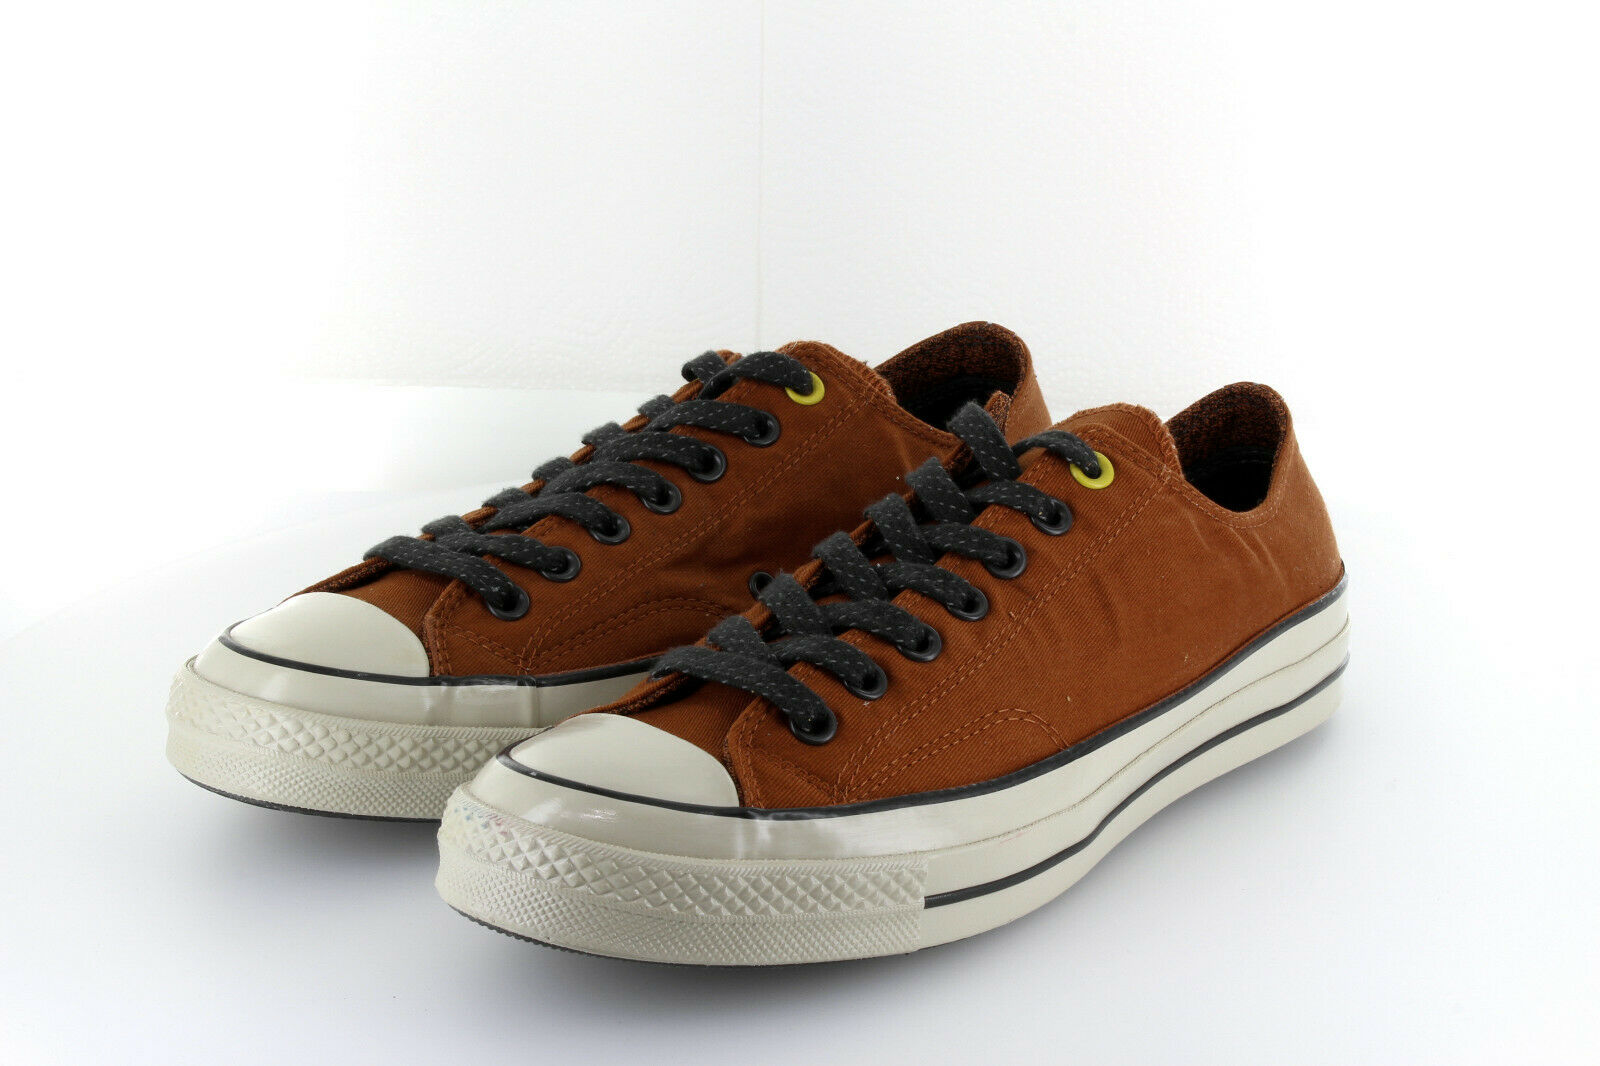 Converse CT AS Ox 70s Antique braun Limited Edition 42,5   43,5 US 9